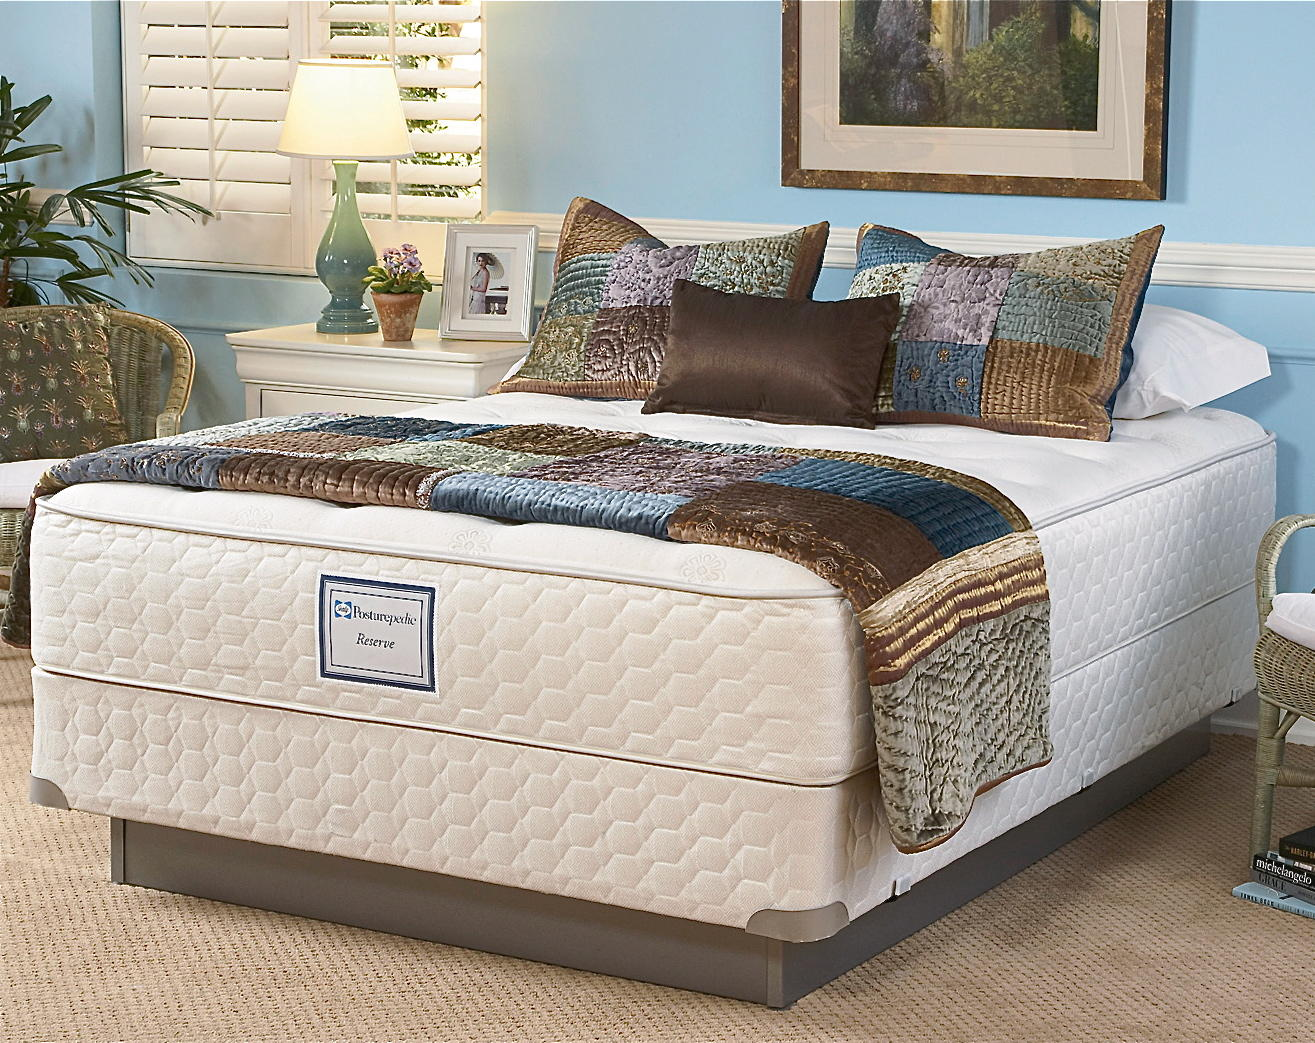 $60 OFF all Serta Perfect Sleeper Belltower Mattresses @ US-Mattress.com